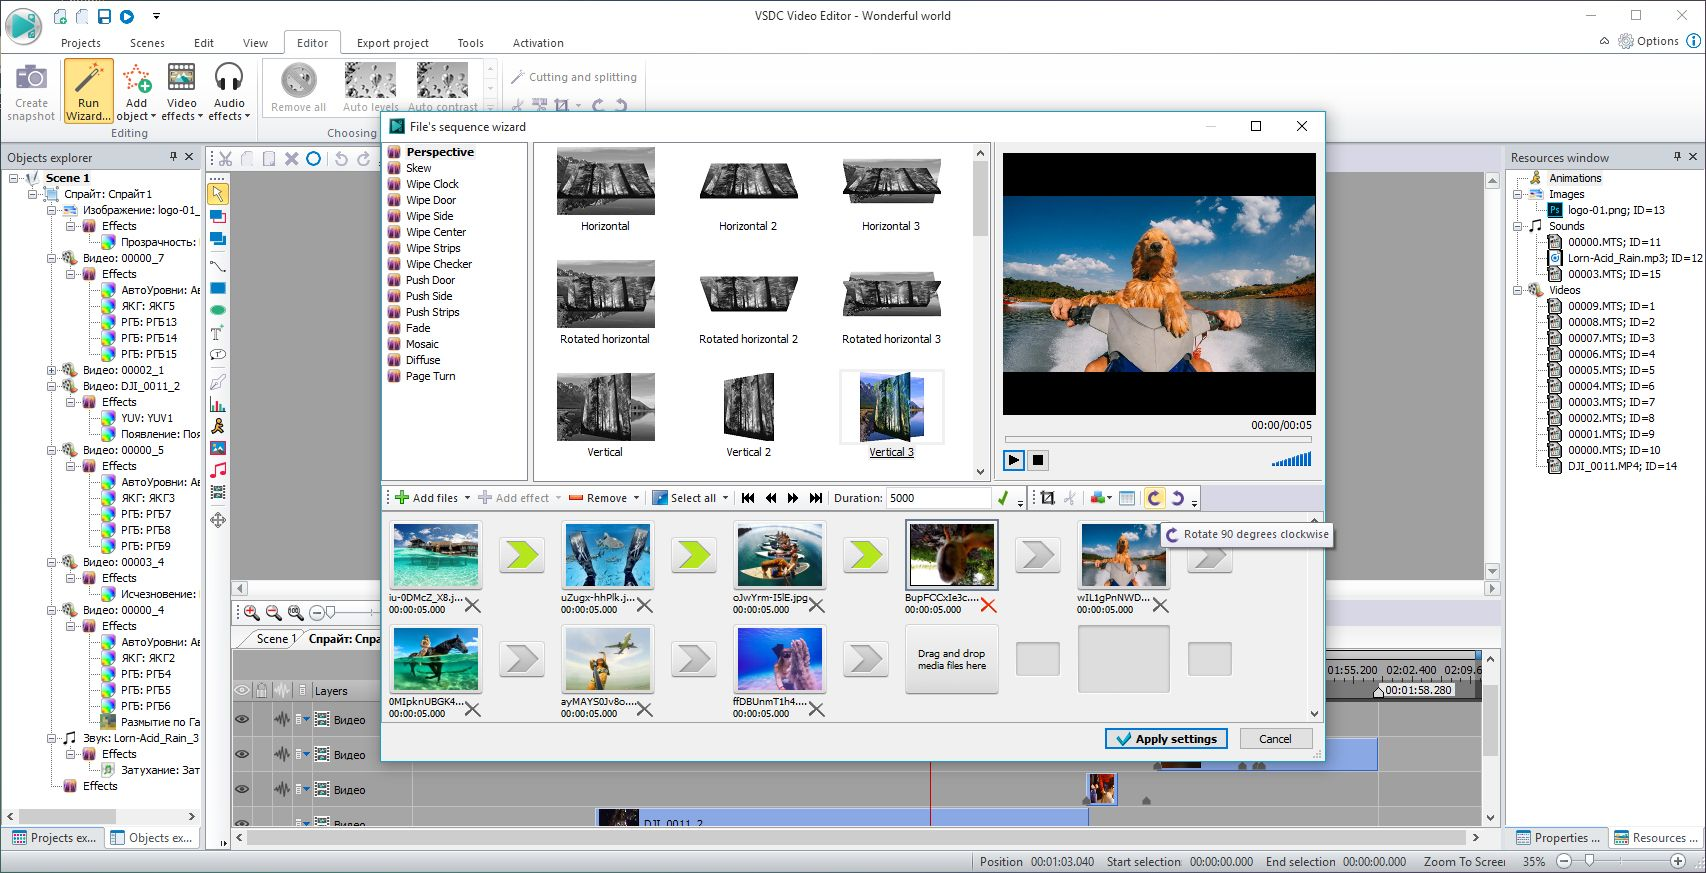 Télécharger VSDC Free Video Editor gratuit (Windows)